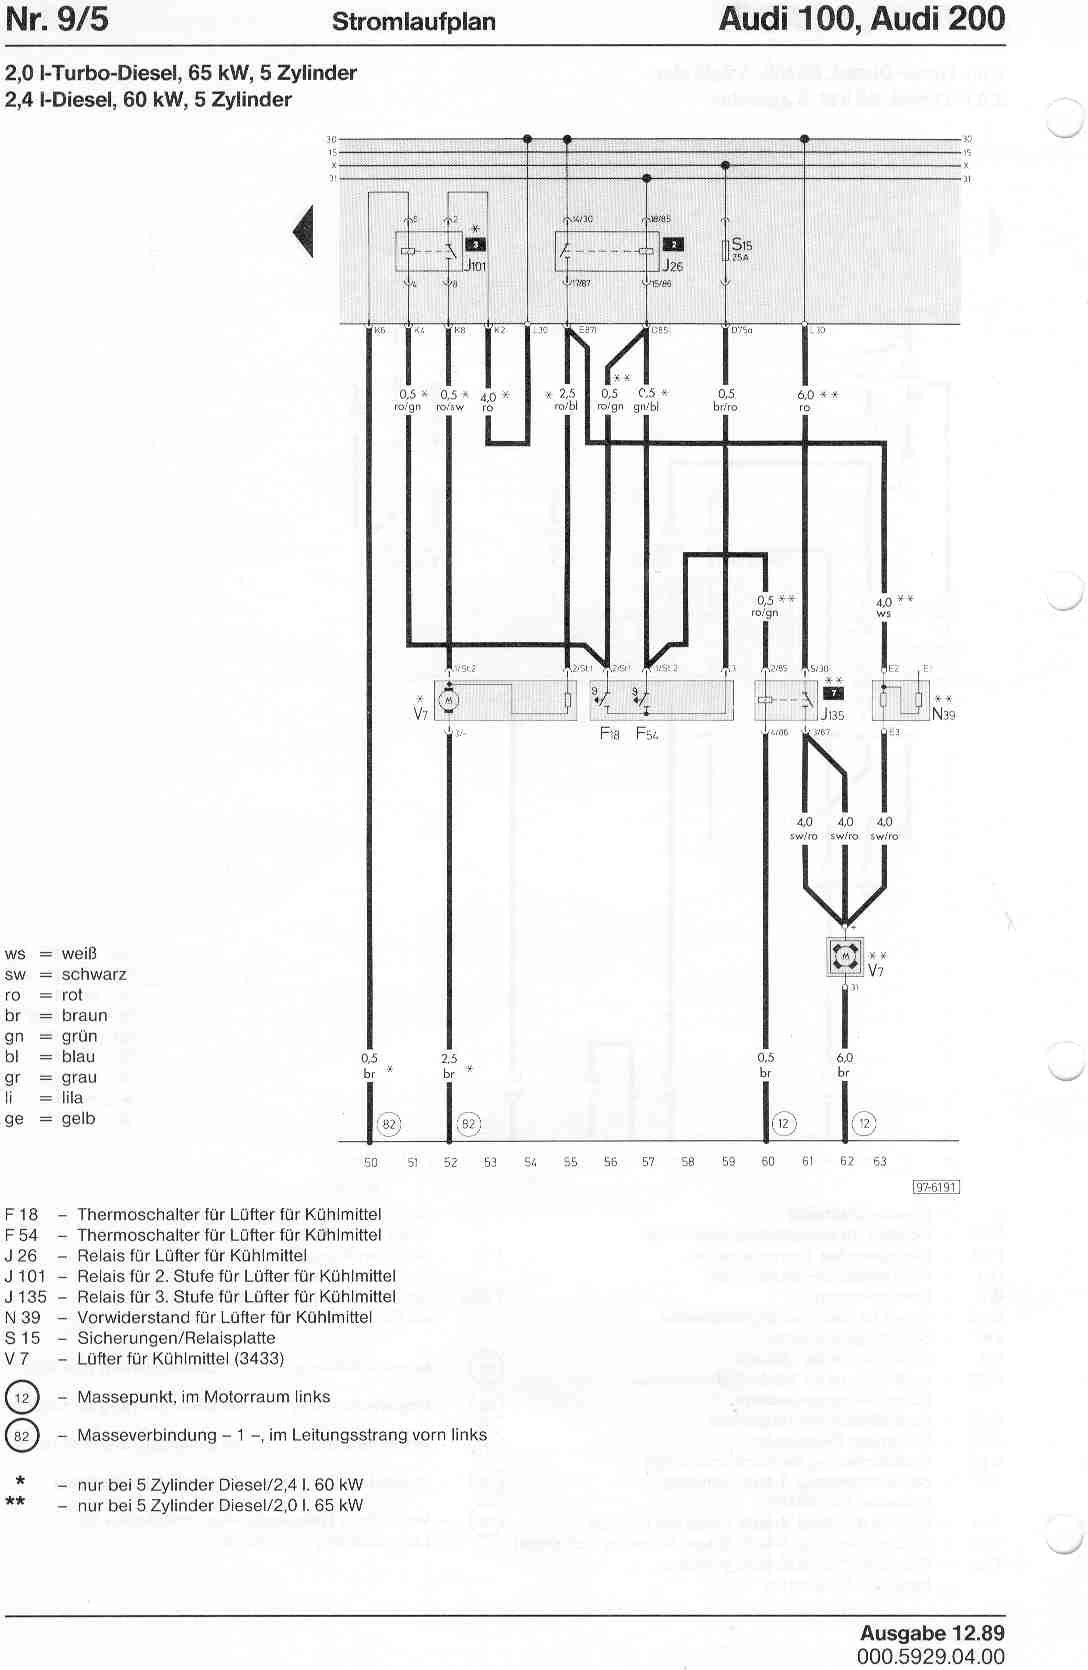 audi 100/200 factory wiring diagrams     page 5     65 kw